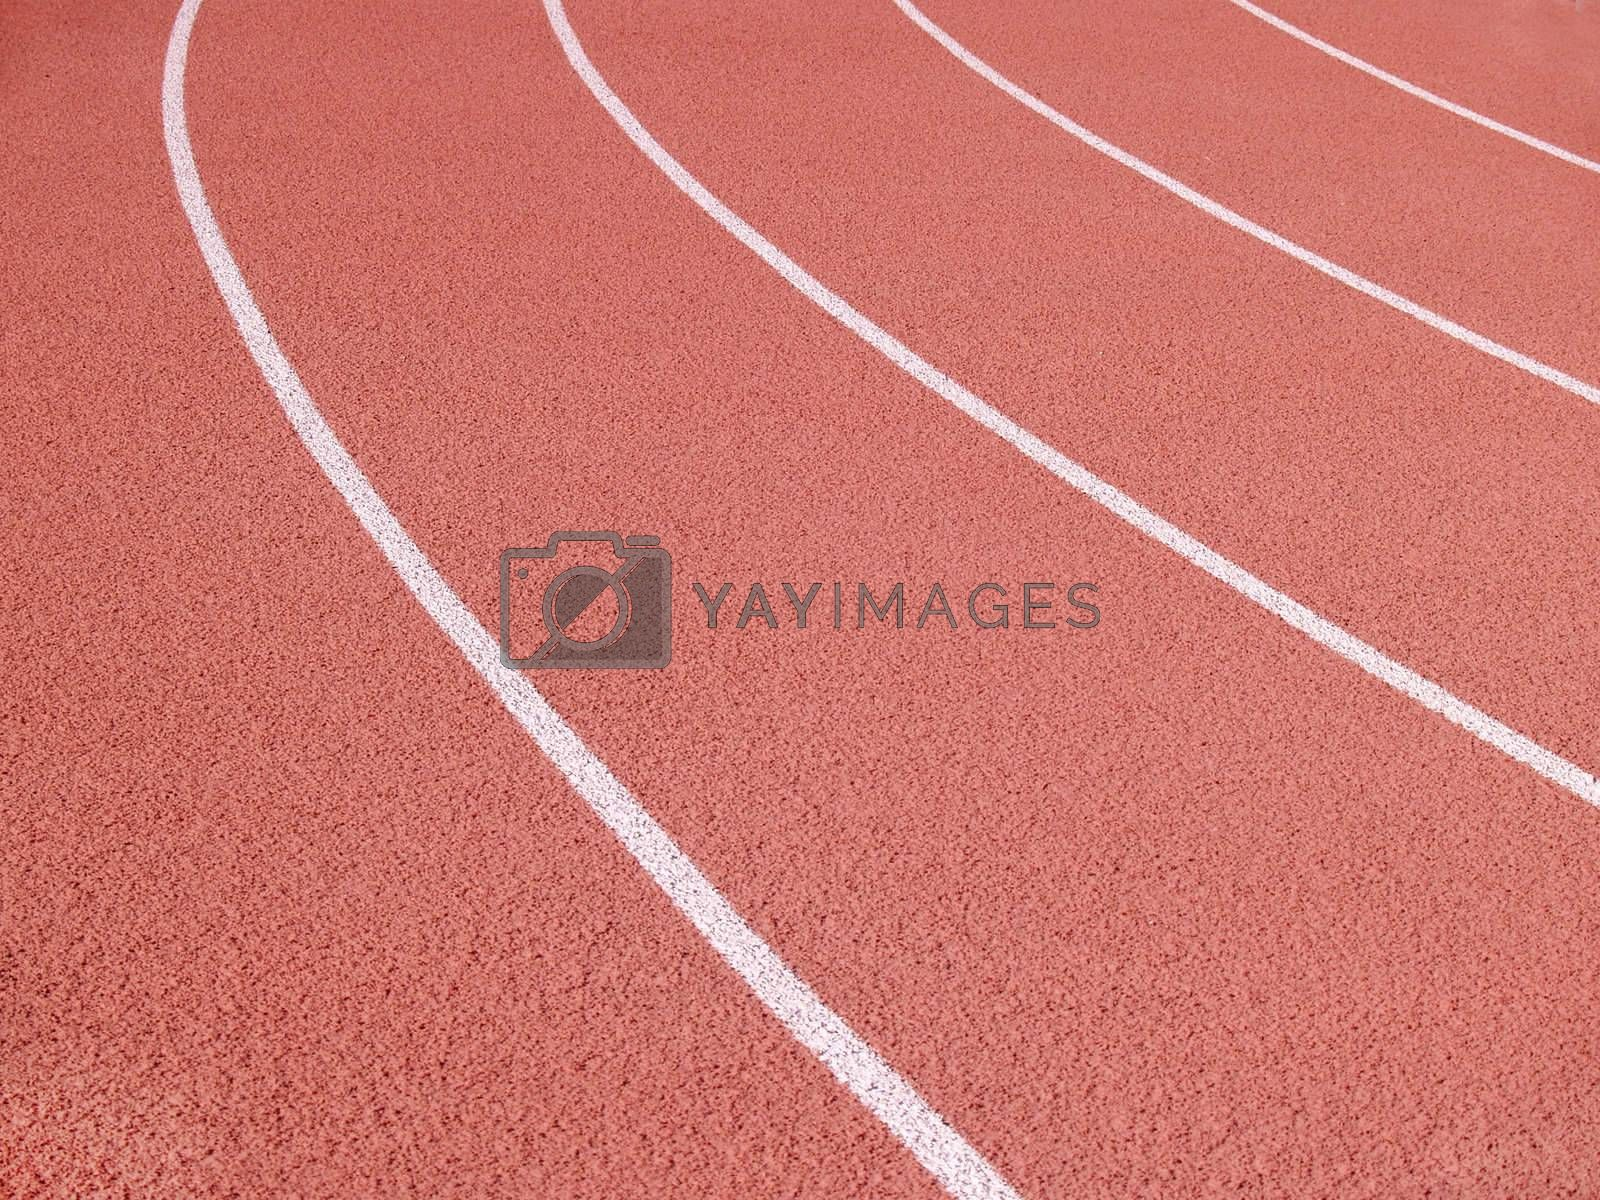 an abstract of lines on a running track